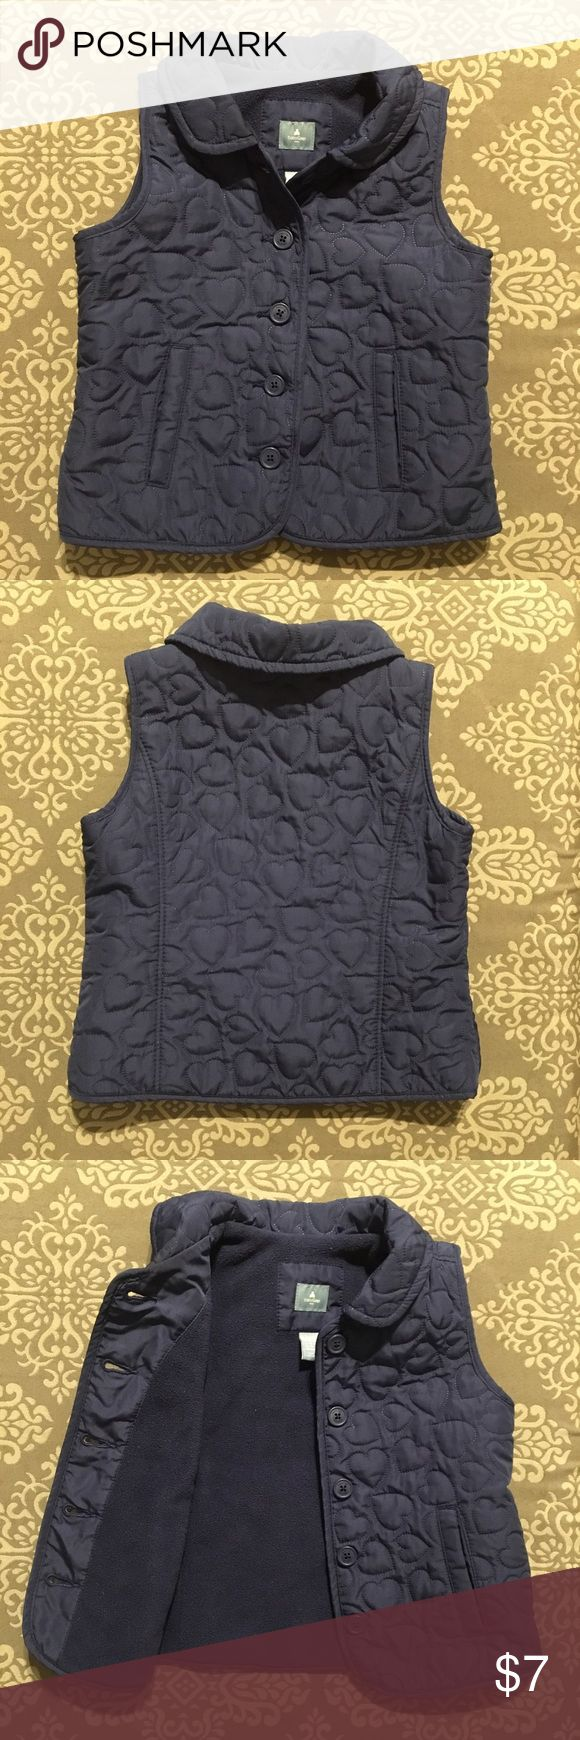 BabyGap Navy Blue Vest with Quilted heart detail BabyGap Navy Blue Vest with Quilted heart detail. Button closure & fleece lined. EUC GAP Jackets & Coats Vests